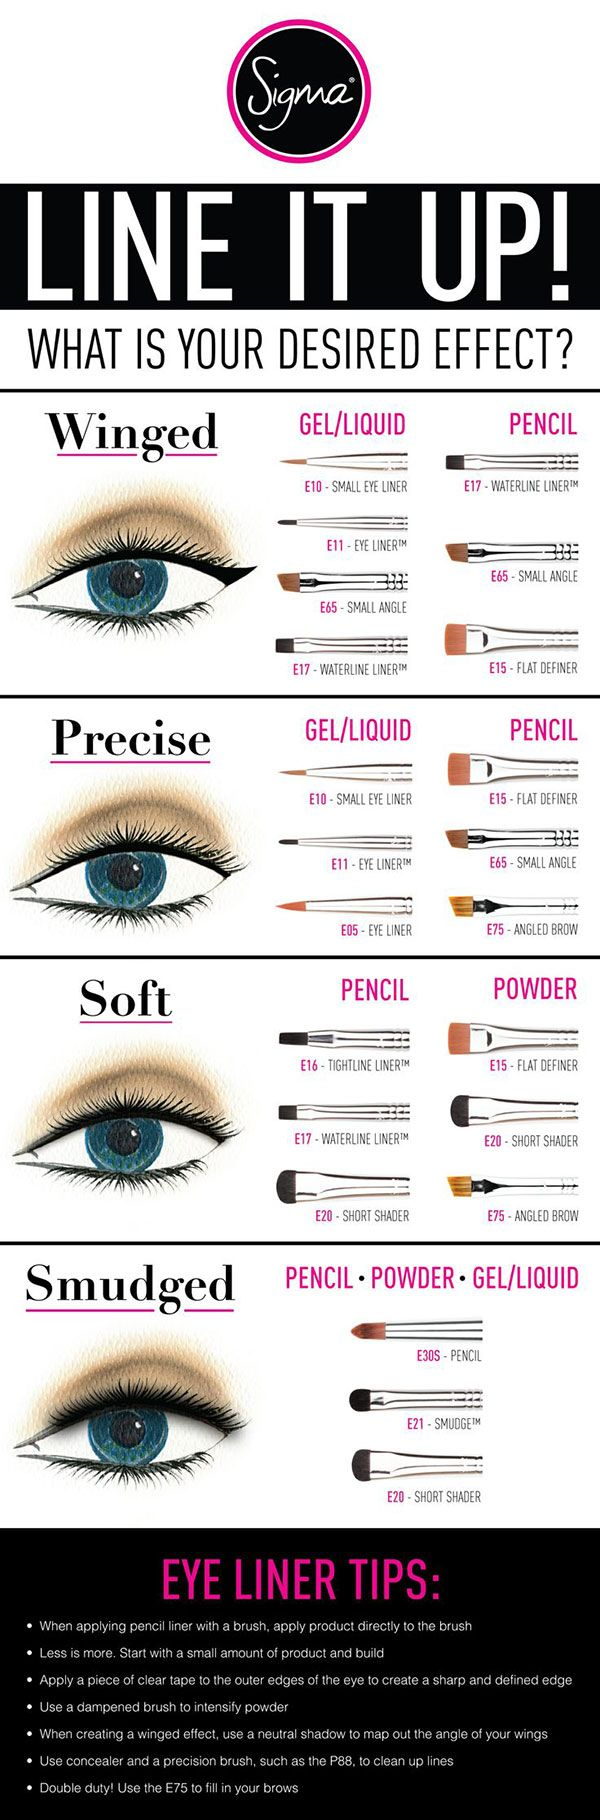 you can use a brush to apply eyeliner for a more natural or precise look.